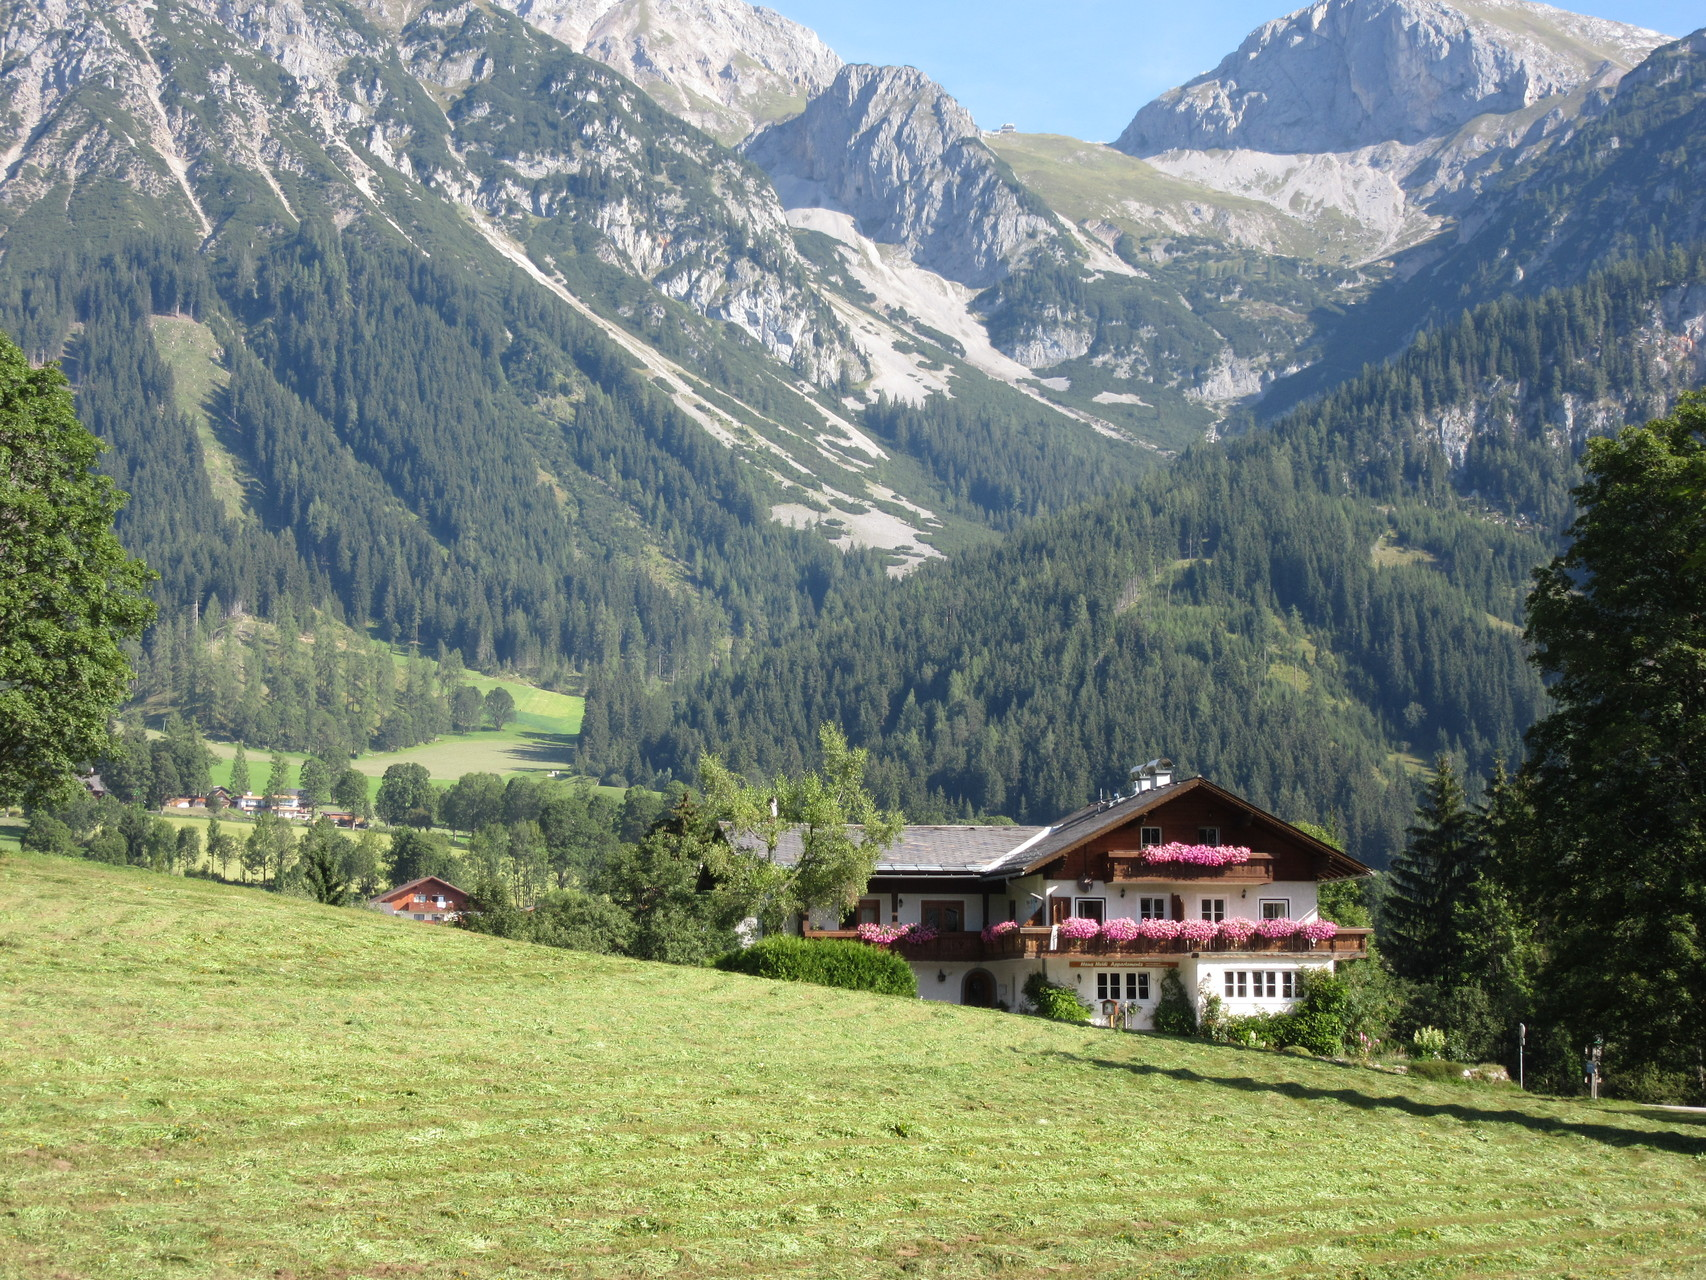 Haus Heidi surrounded by alpine meadows